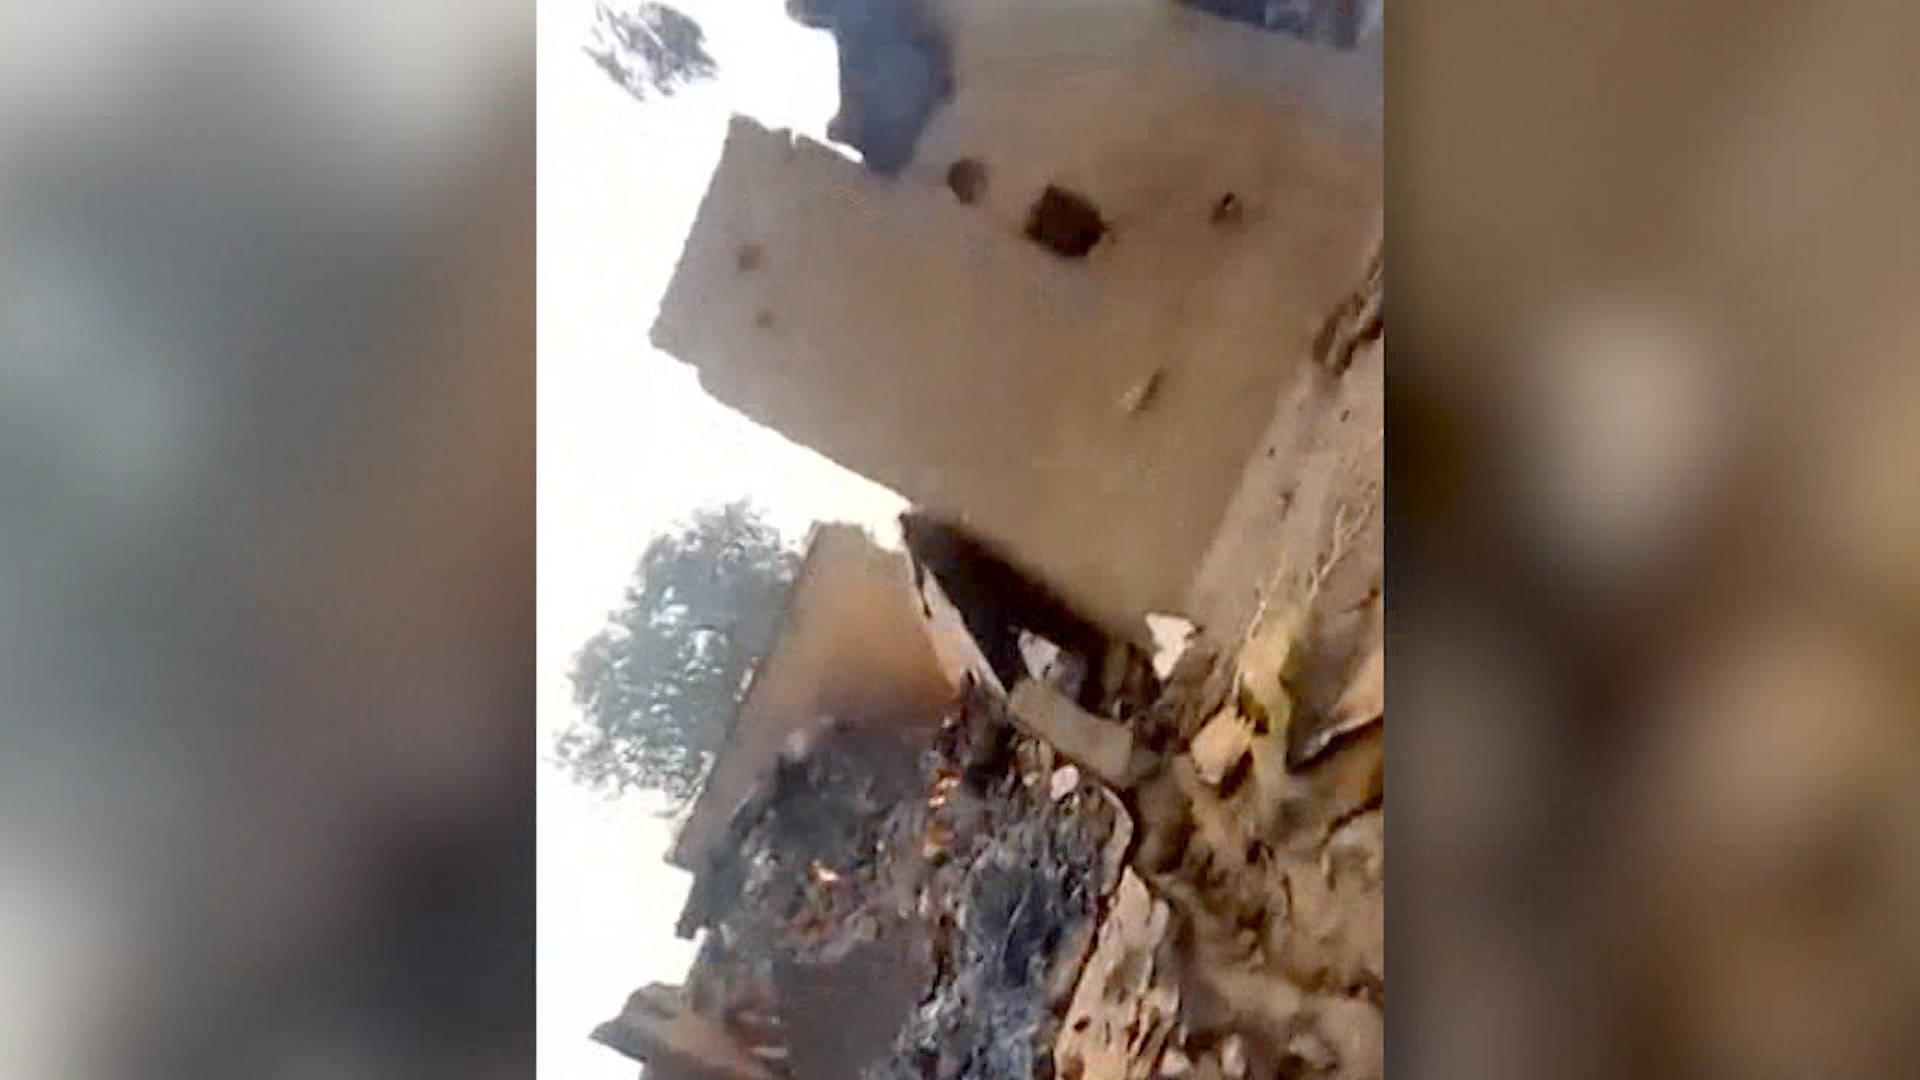 Mali: 134 People Killed Amid Mounting Ethnic Tensions